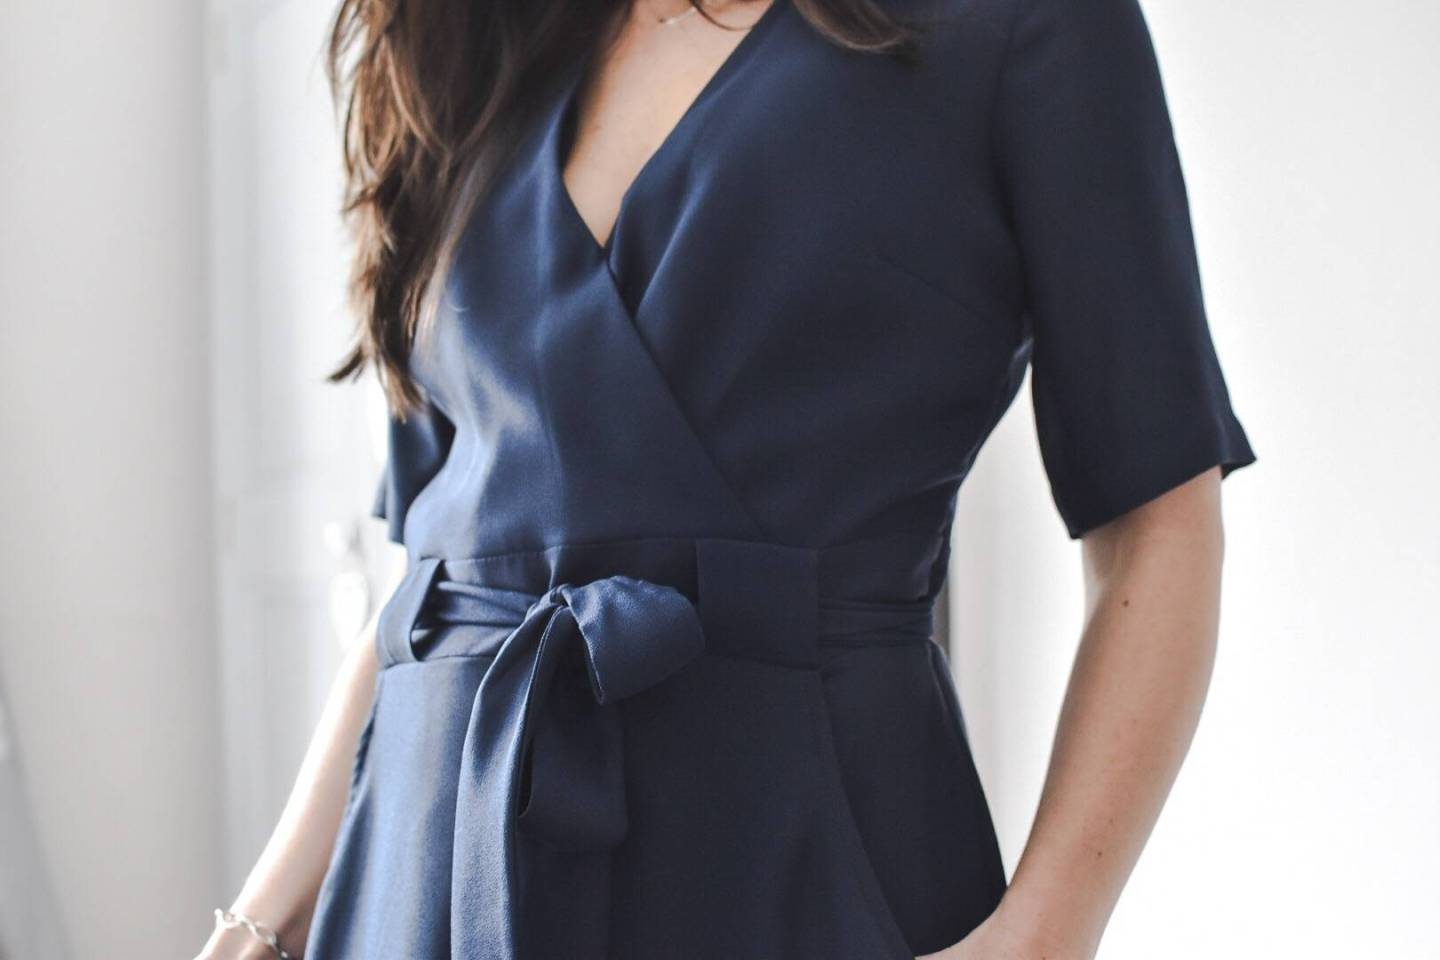 My top picks from the current collection at River Island this season is this classy navy wrap dress